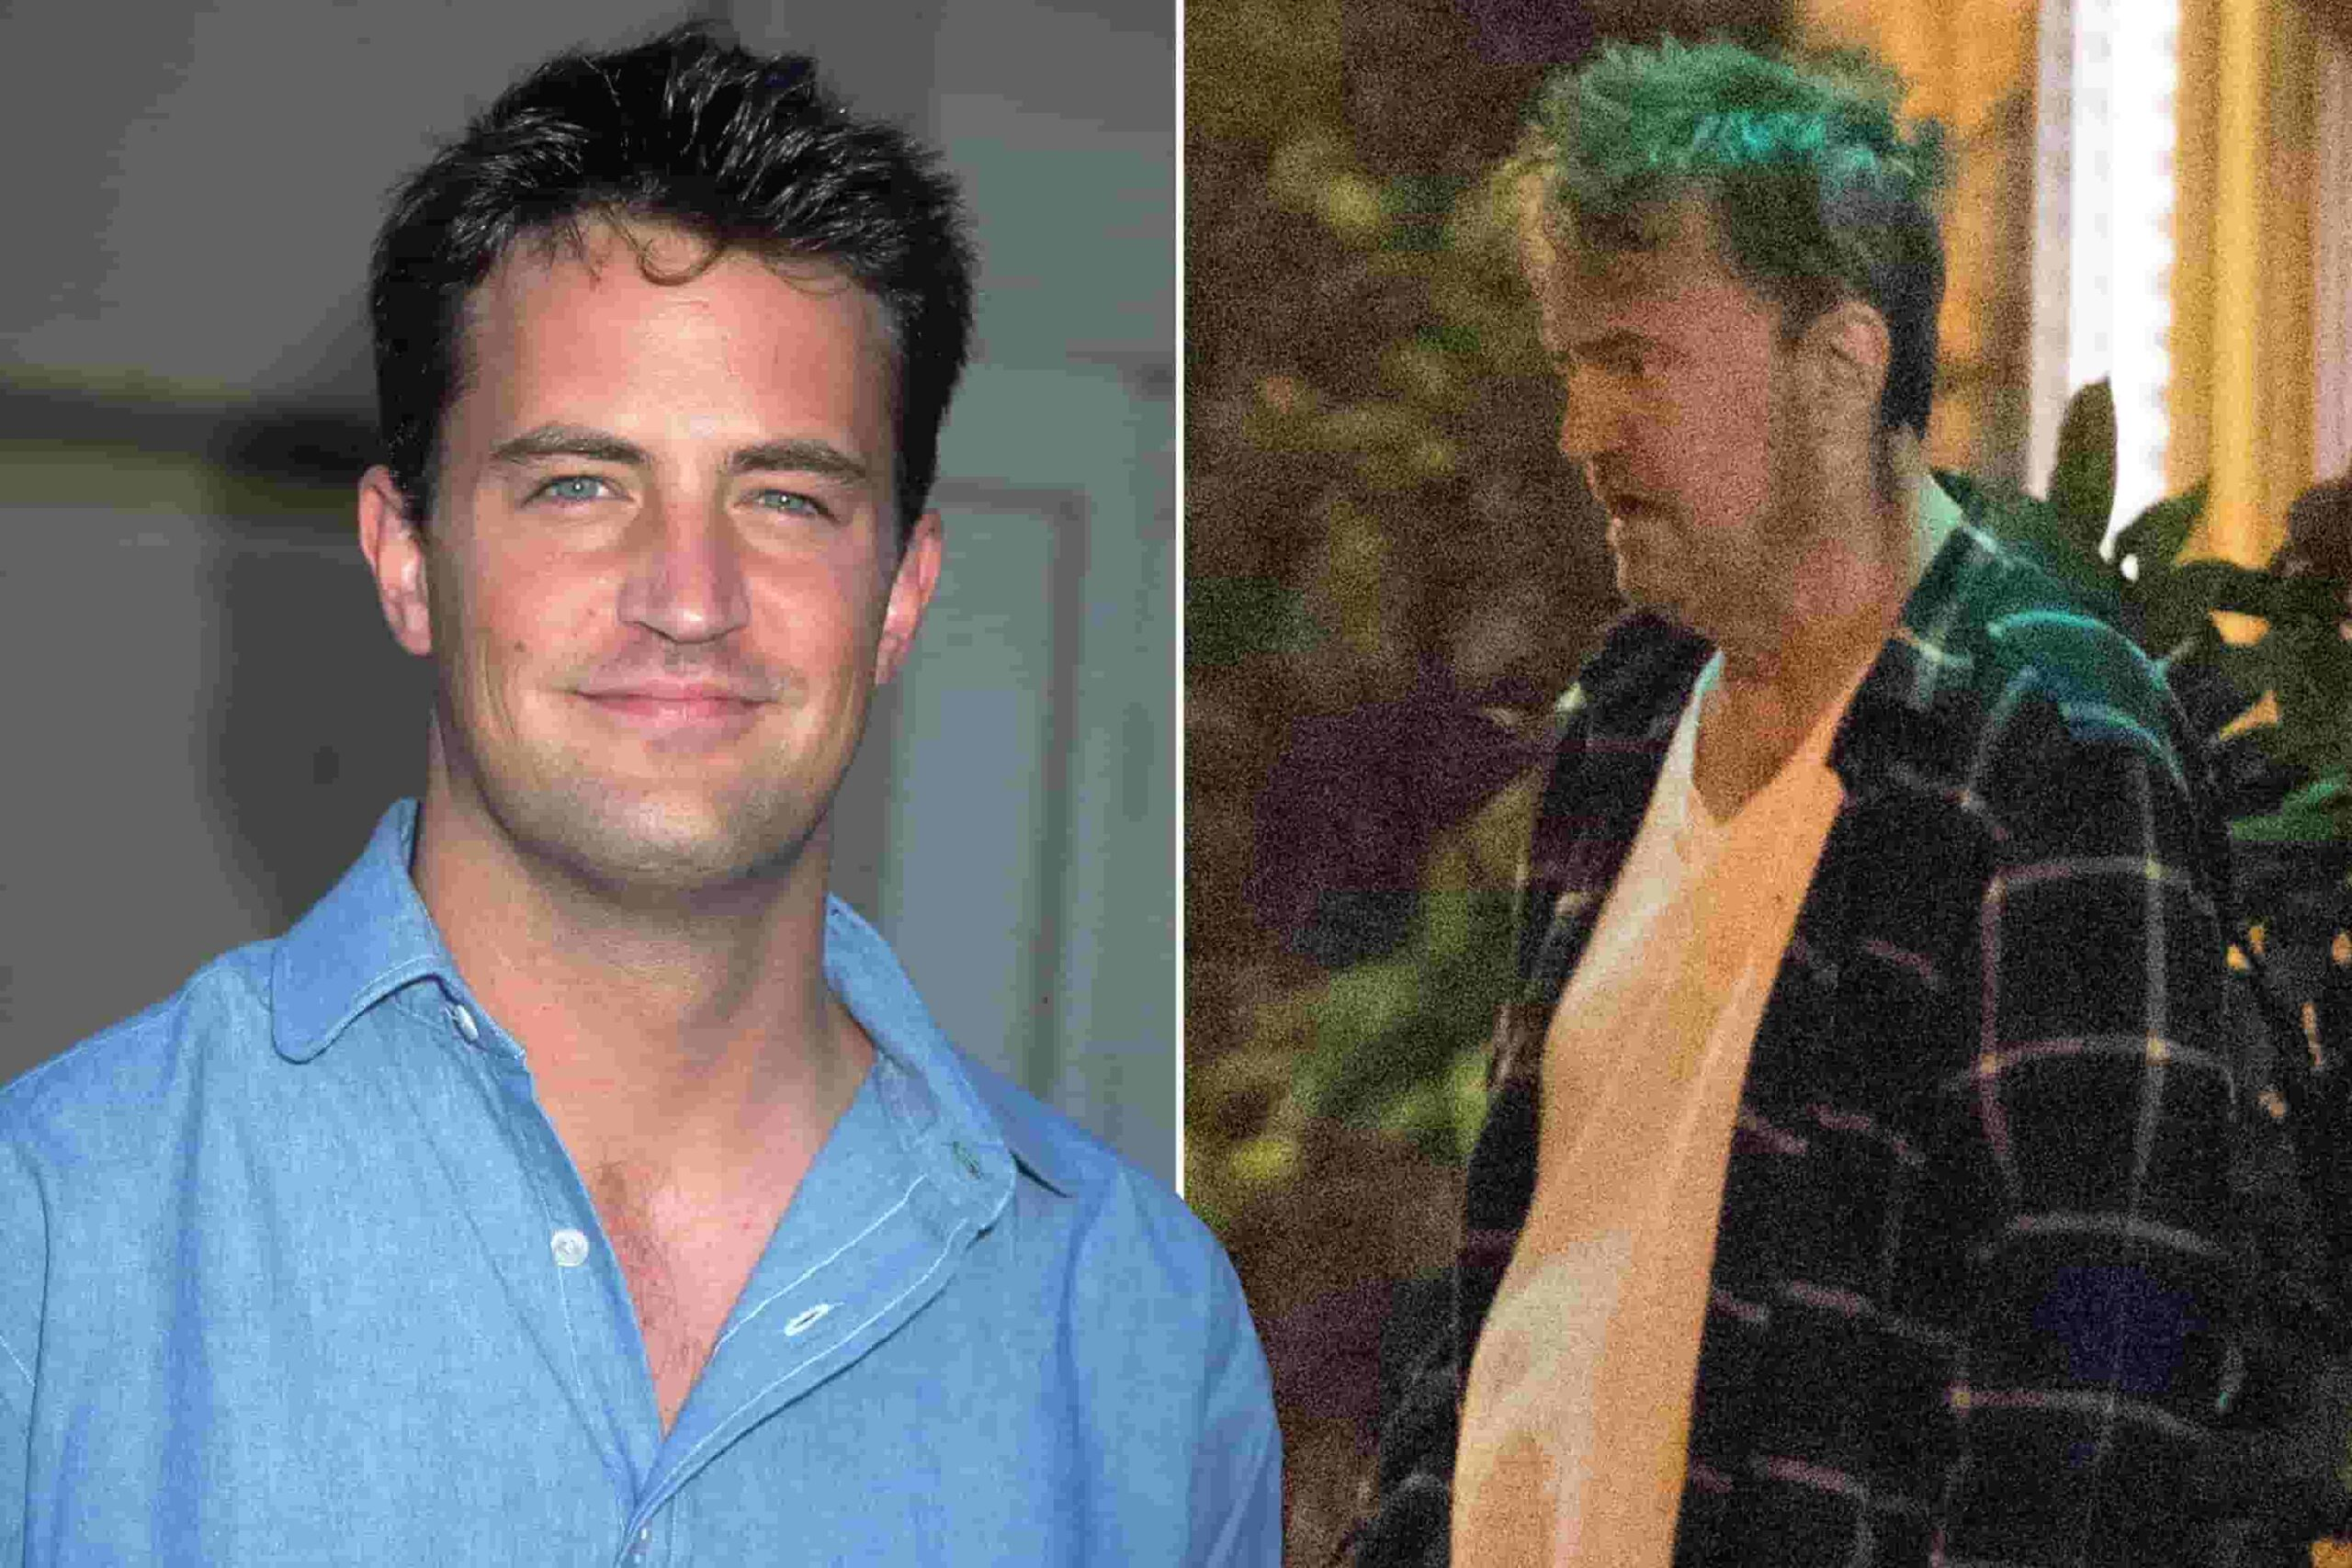 matthew perry looks old and devastated because of his addiction